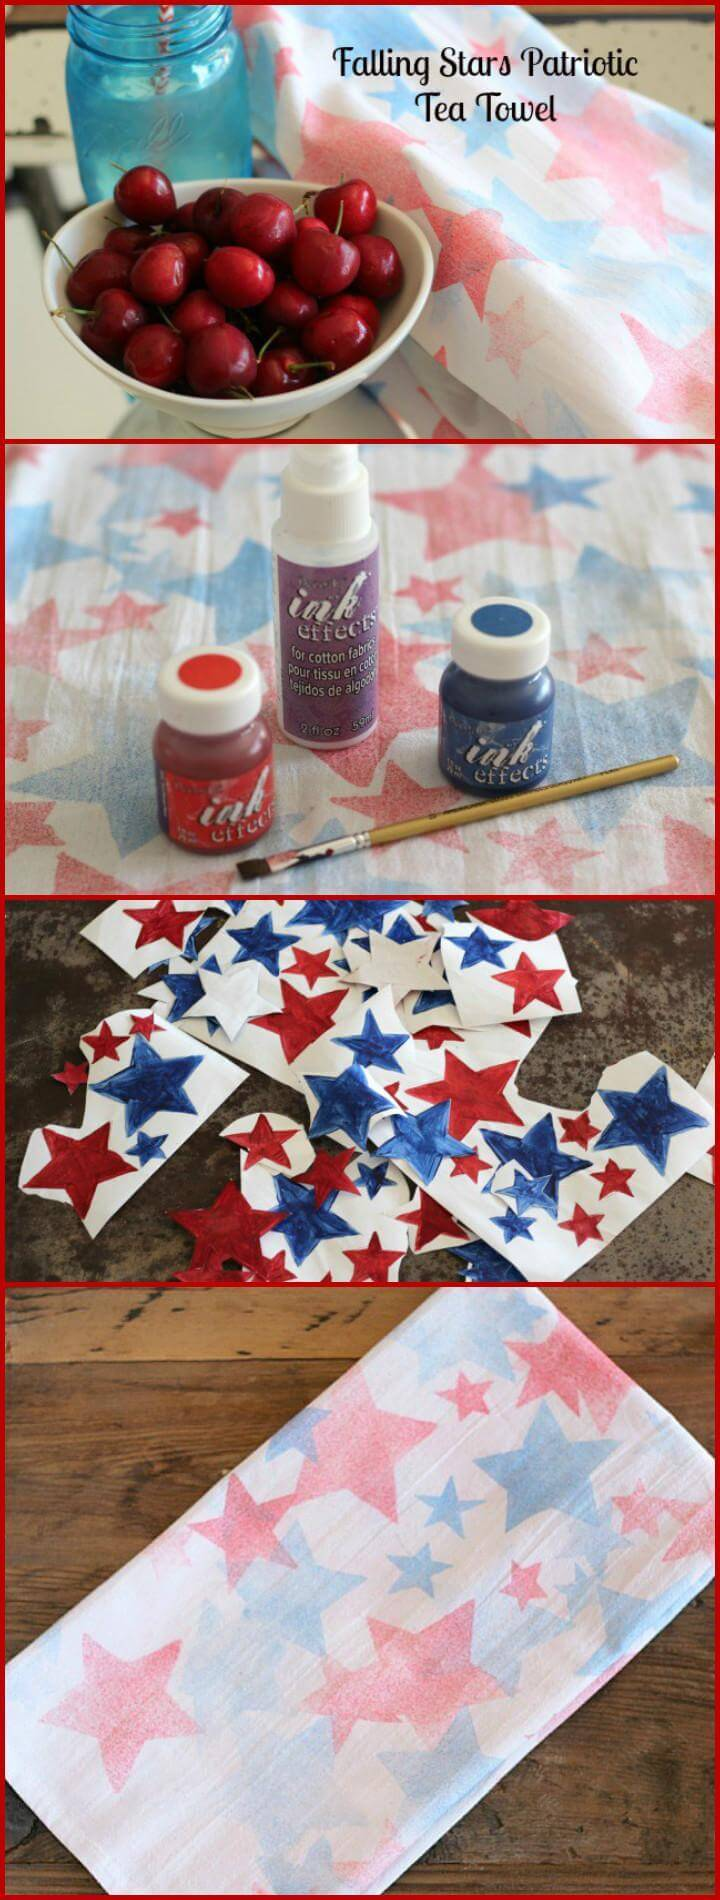 DIY Falling Stars Patriotic Tea Towel